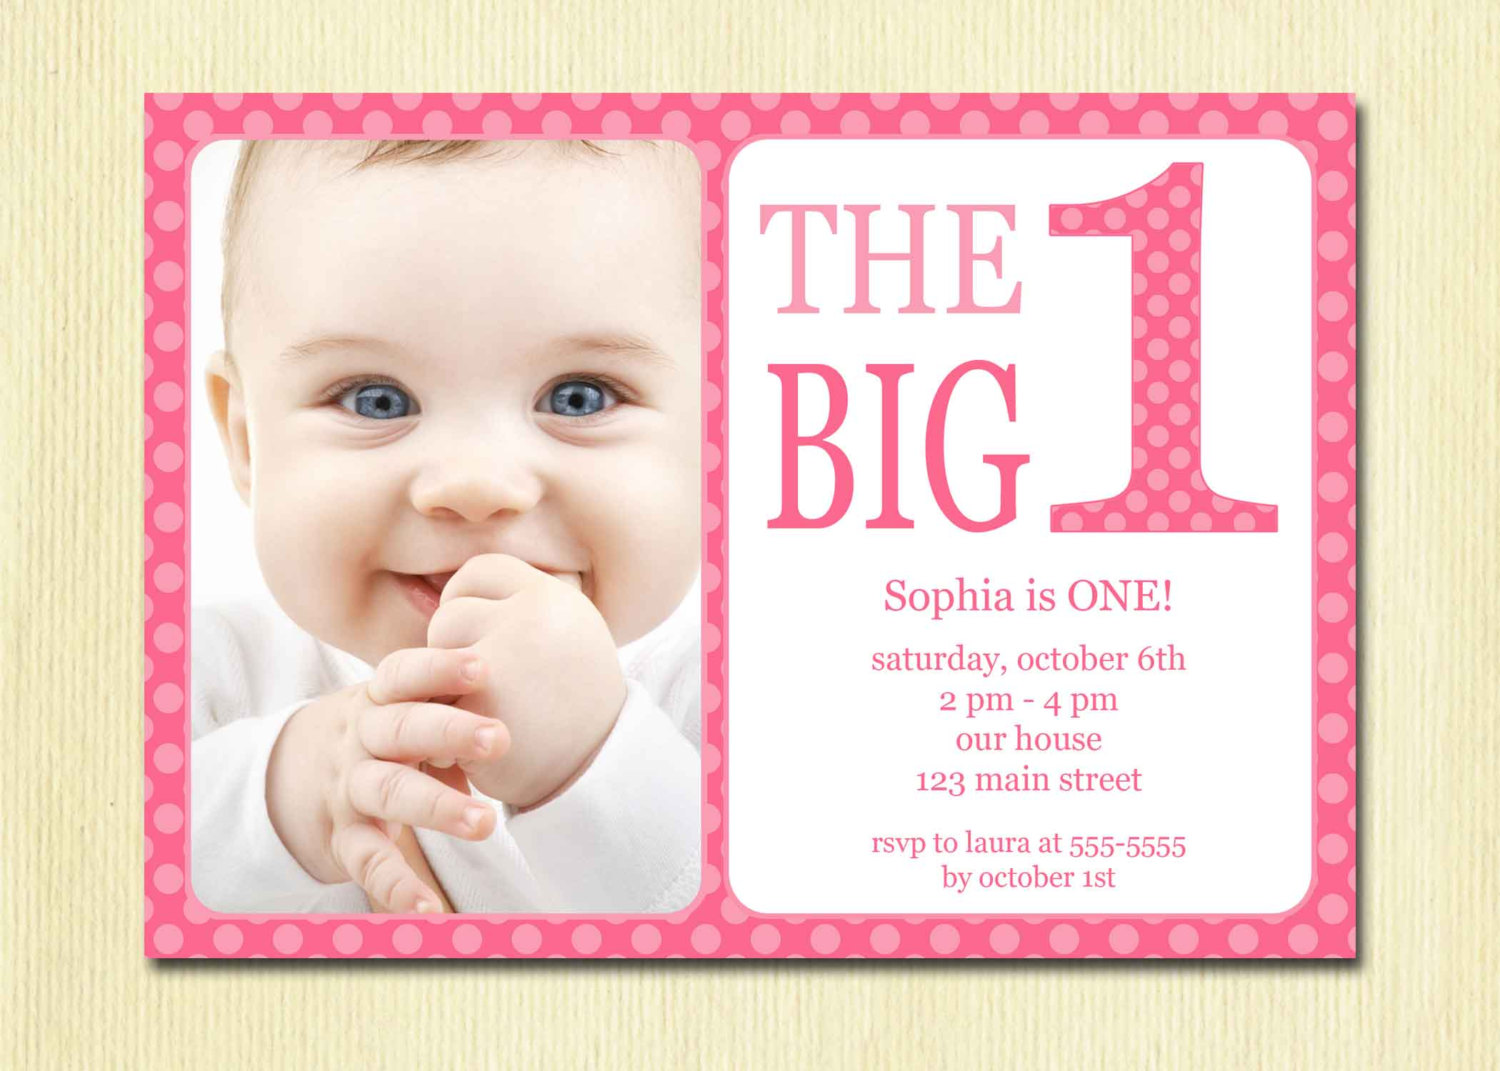 baby birthday invitation card template ; Popular-1St-Birthday-Invitations-To-Design-Birthday-Party-Invitation-Template